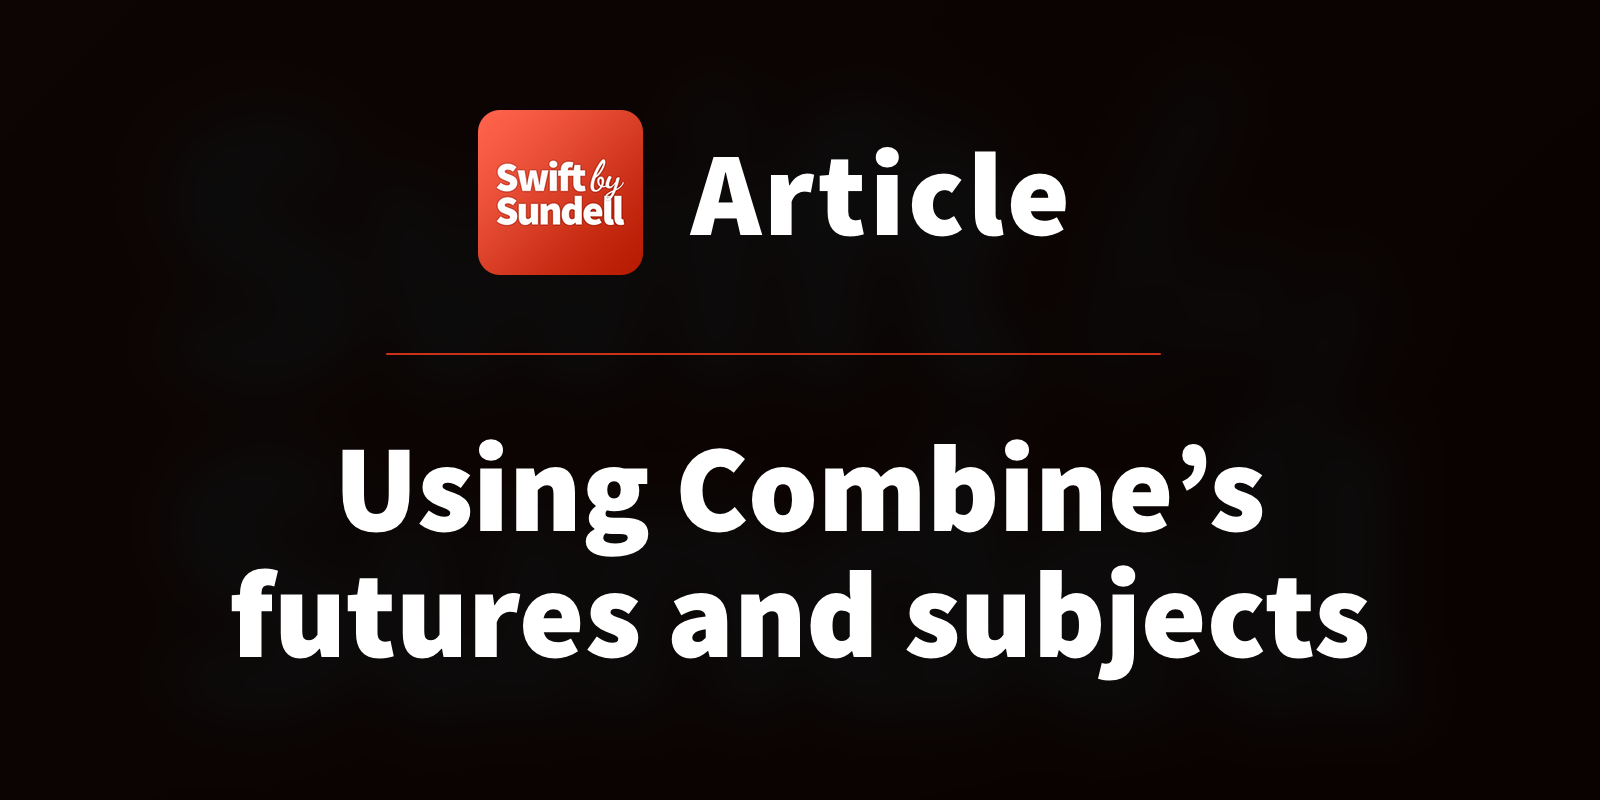 Using Combine's futures and subjects